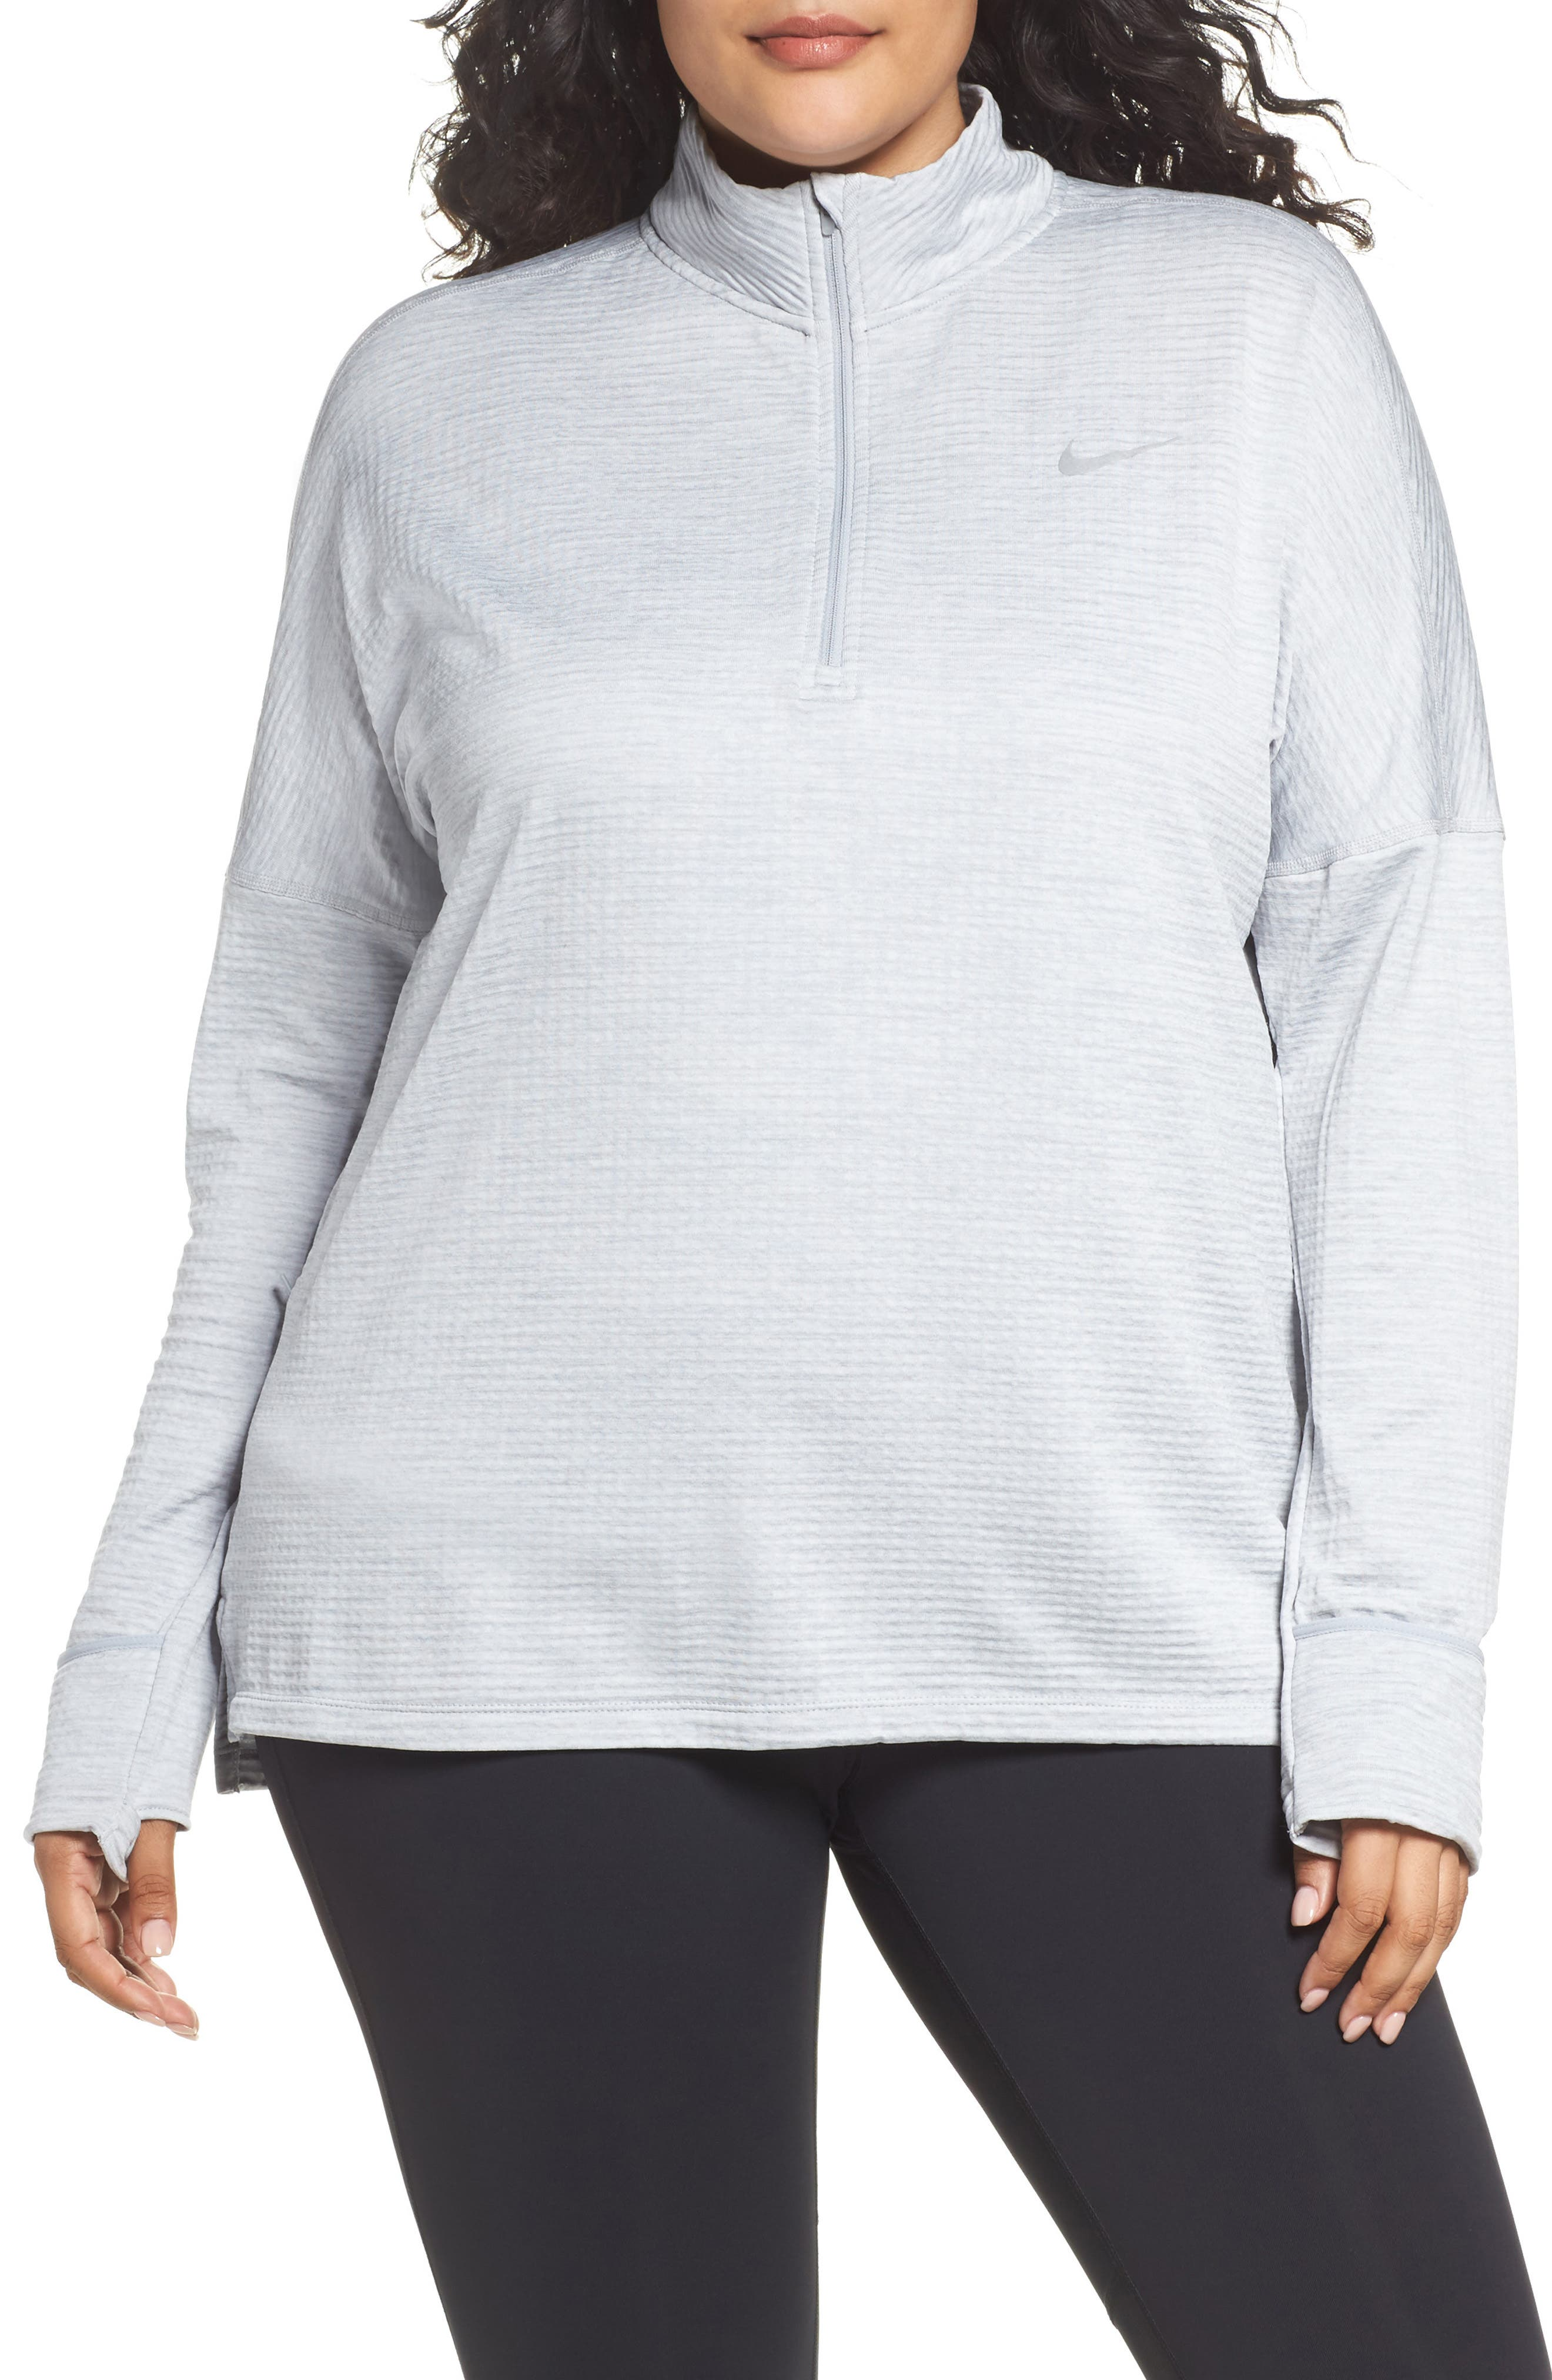 Alternate Image 1 Selected - Nike Sphere Element Long Sleeve Running Top (Plus Size)